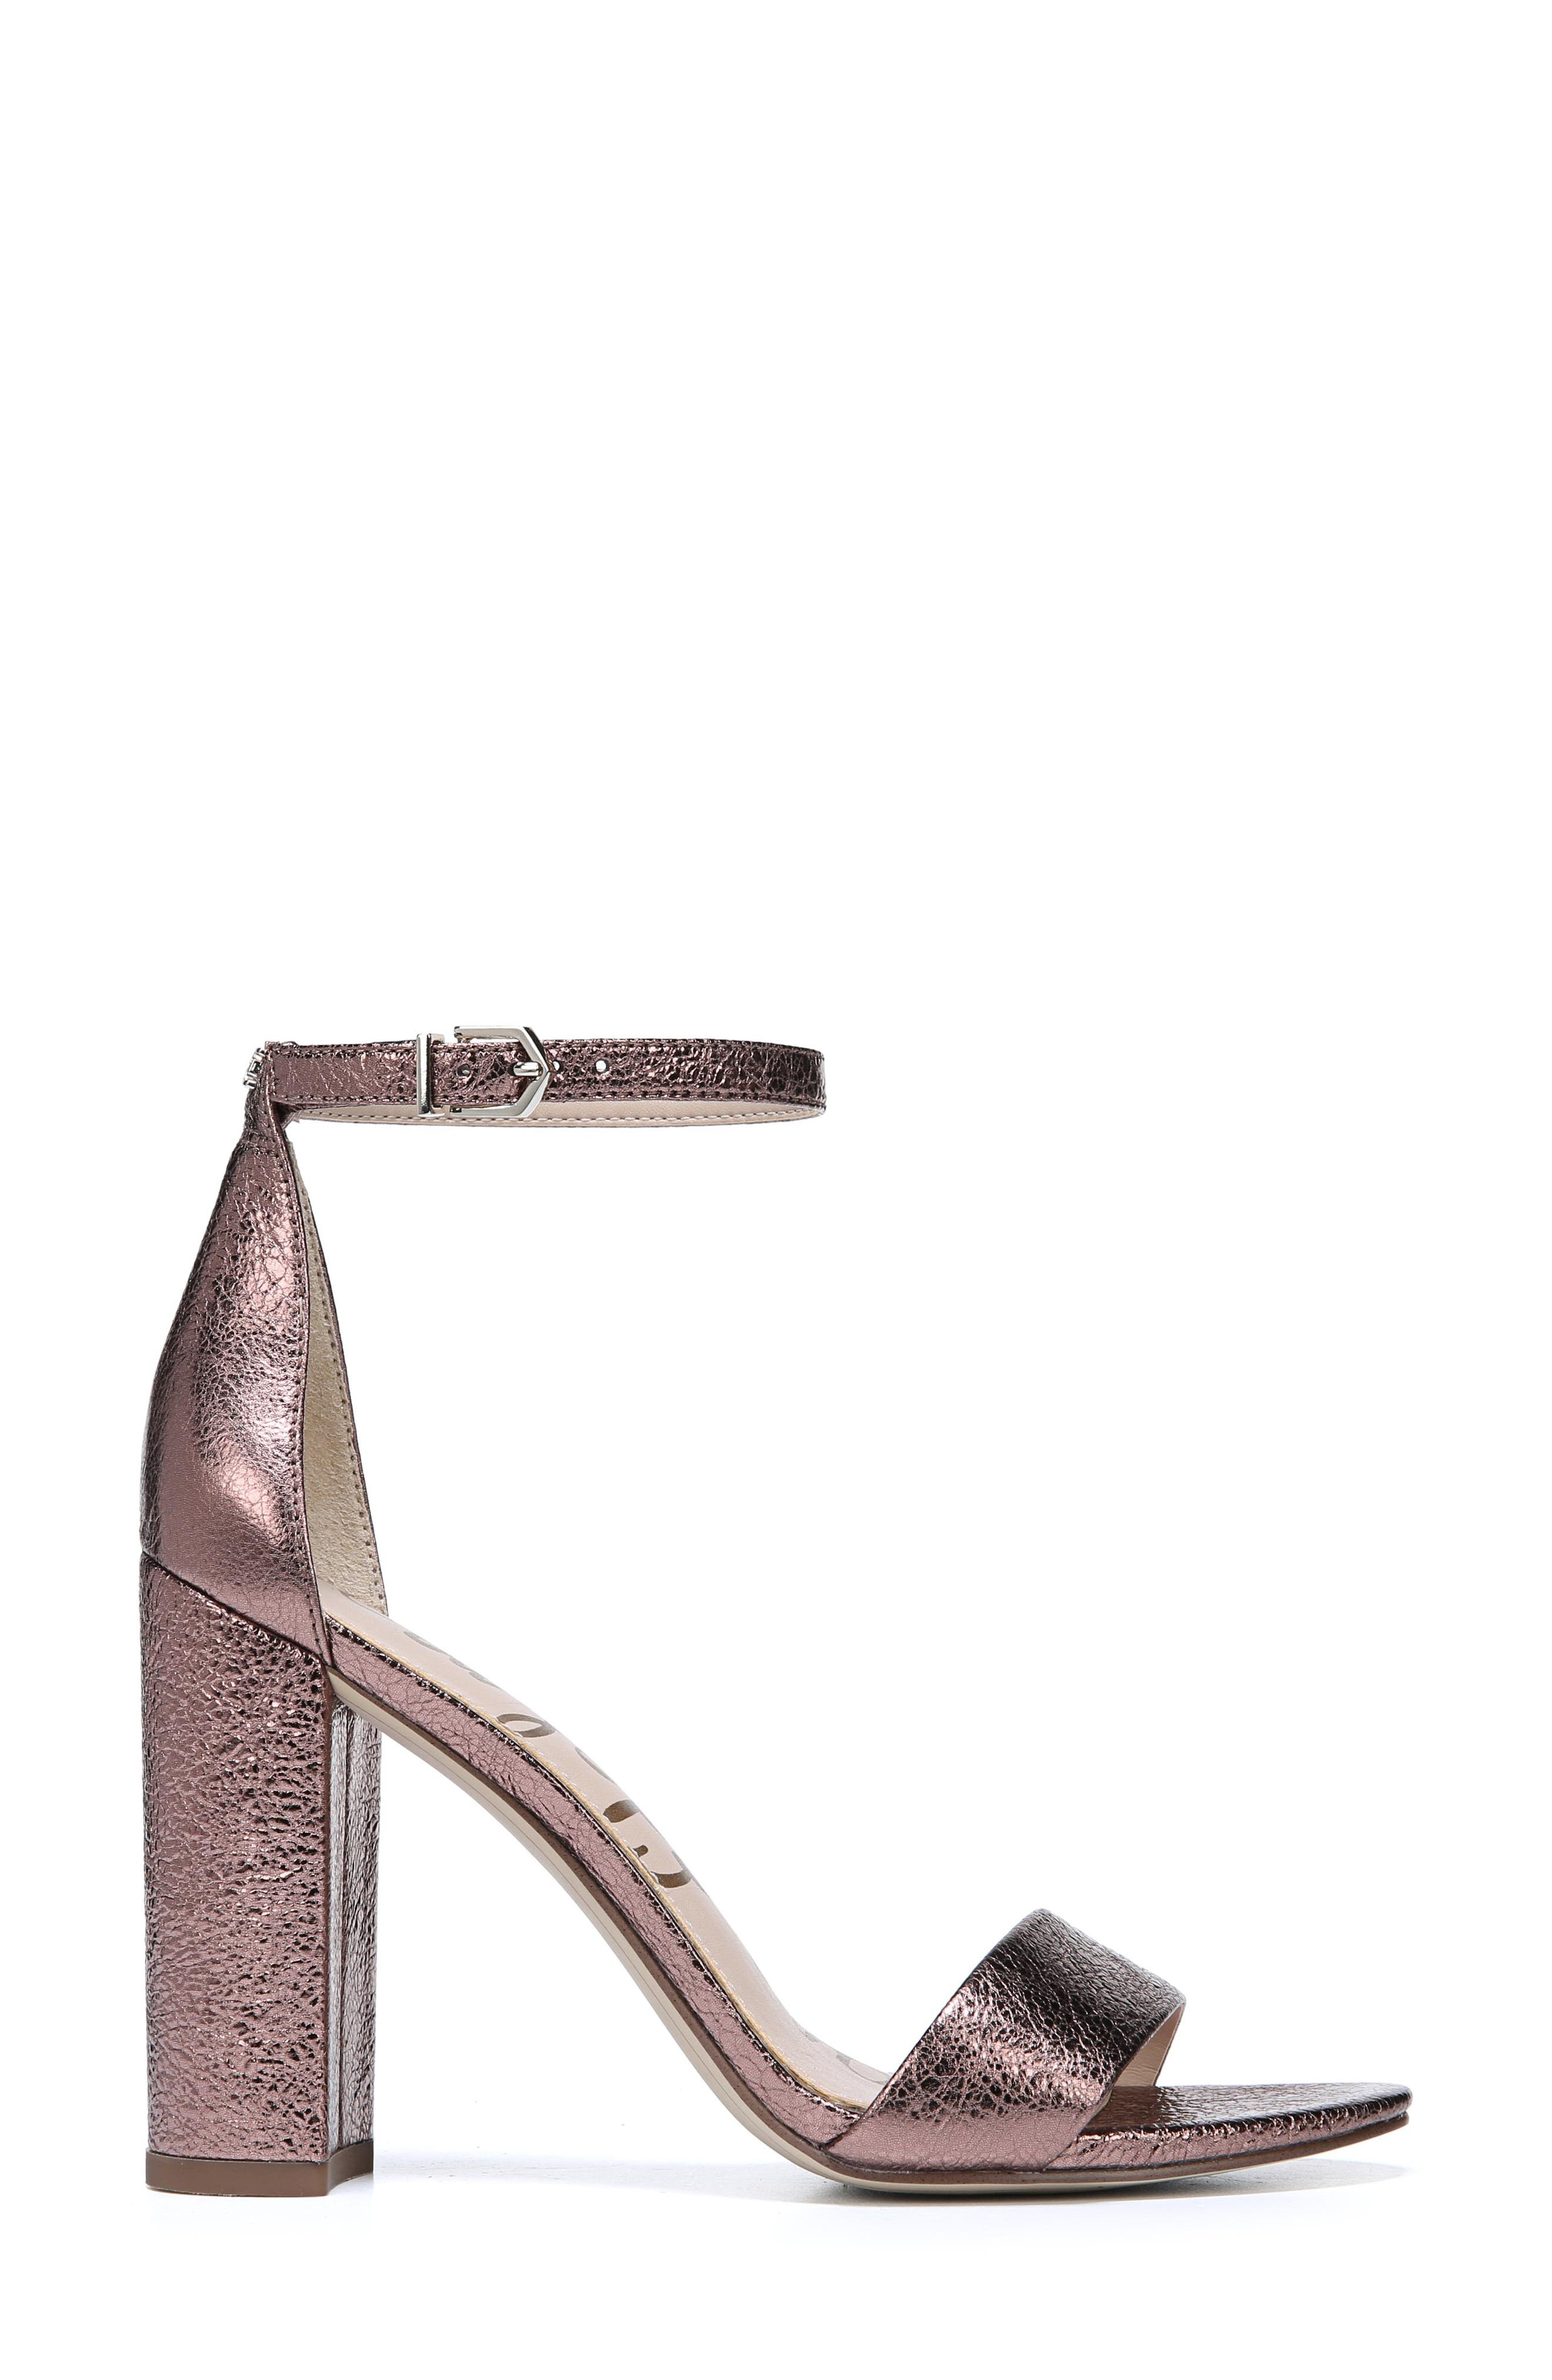 Yaro Ankle Strap Sandal,                             Alternate thumbnail 8, color,                             Cameo Pink Suede